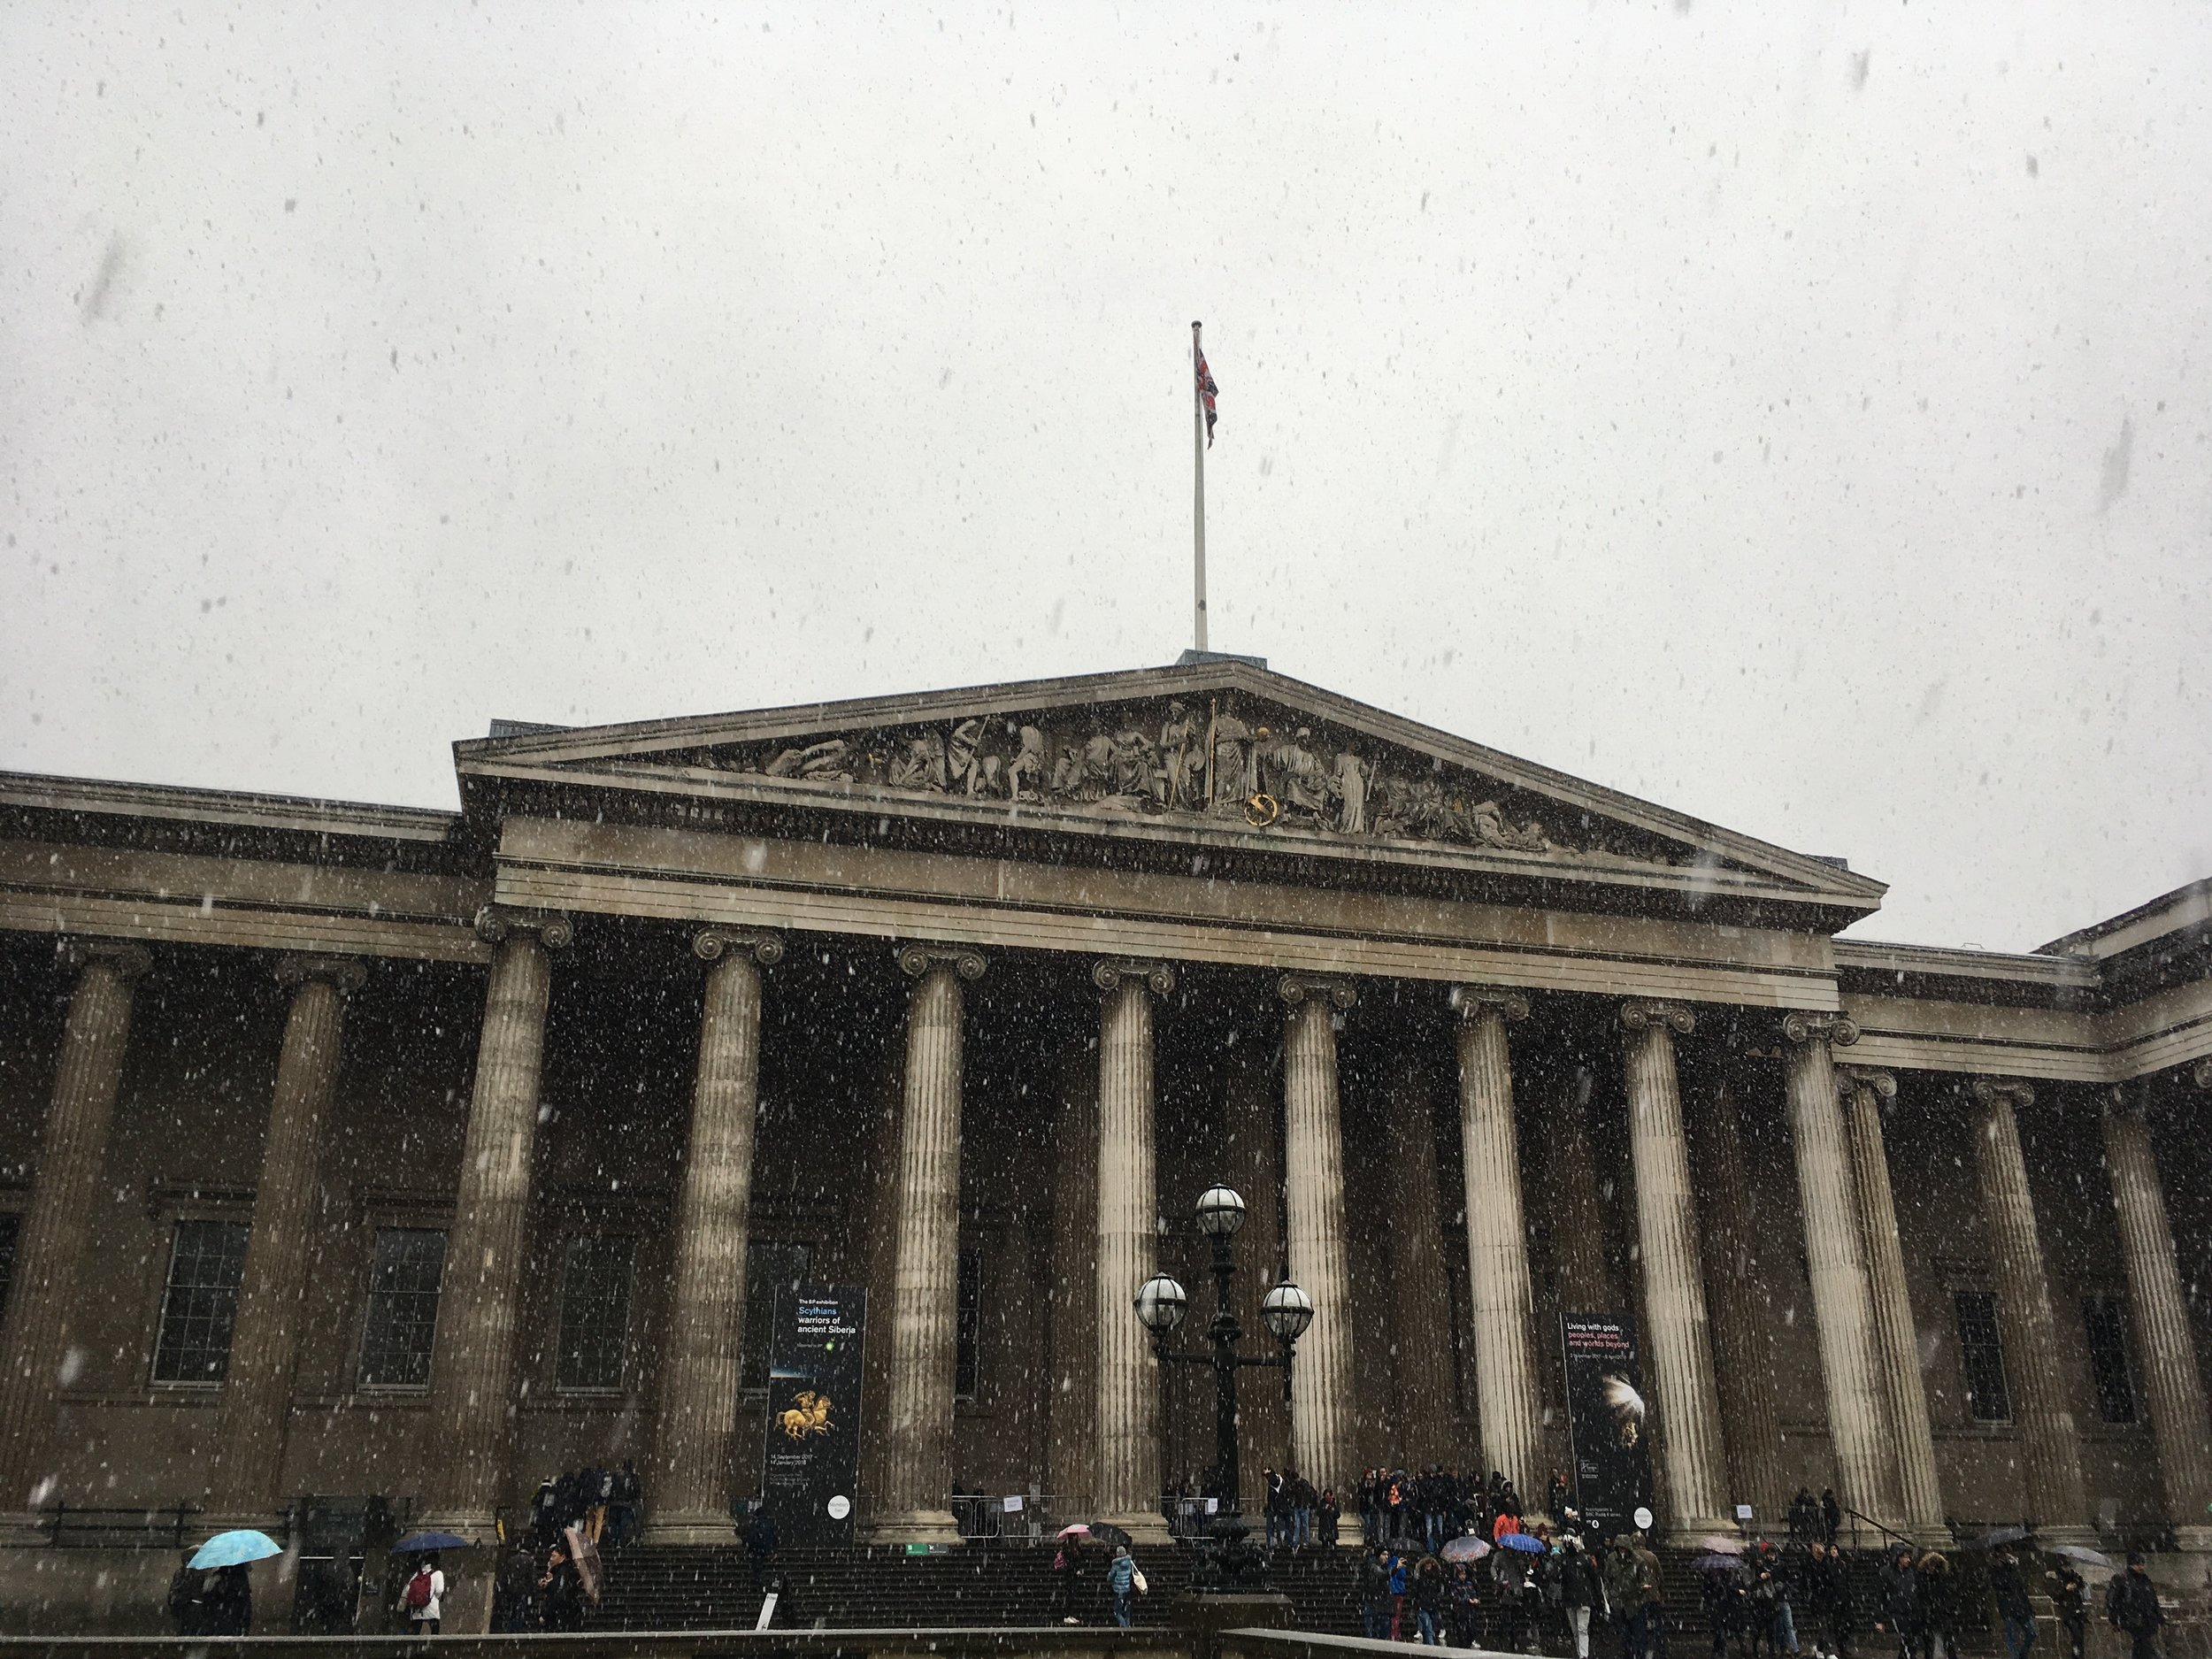 British Museum in the snow